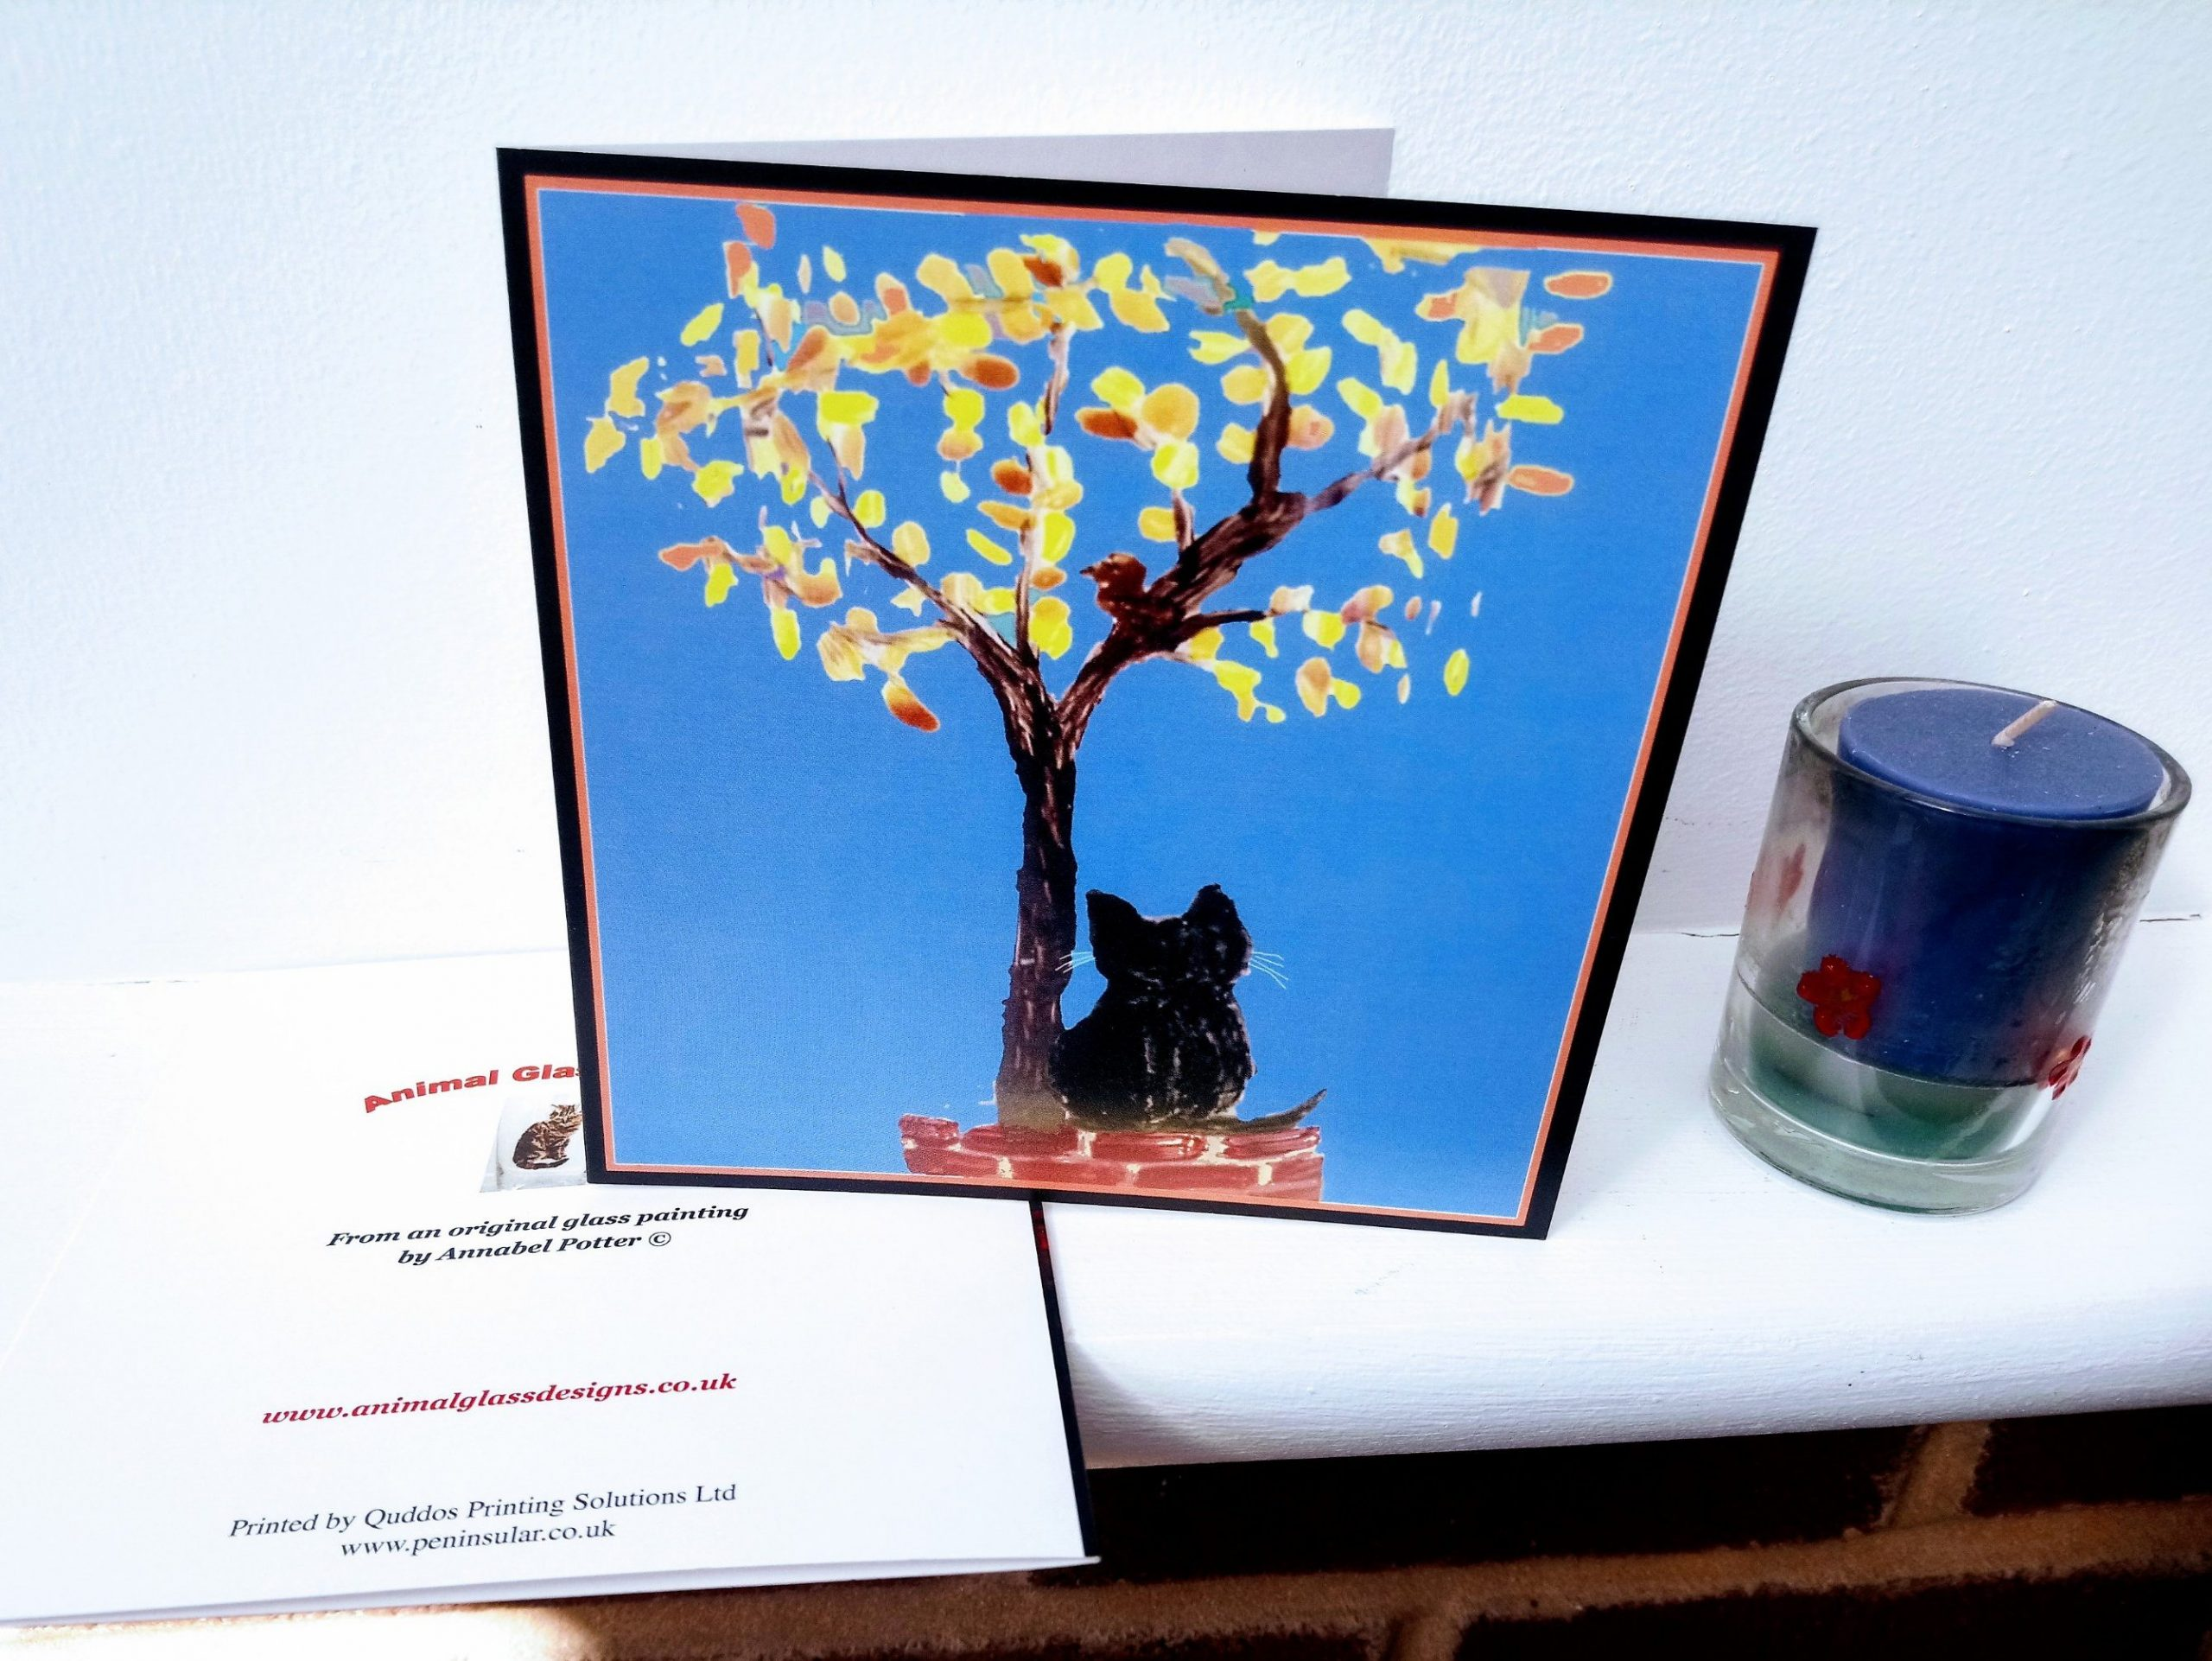 Greeting card with a cat sitting on a wall under a tree with Autumn leaves